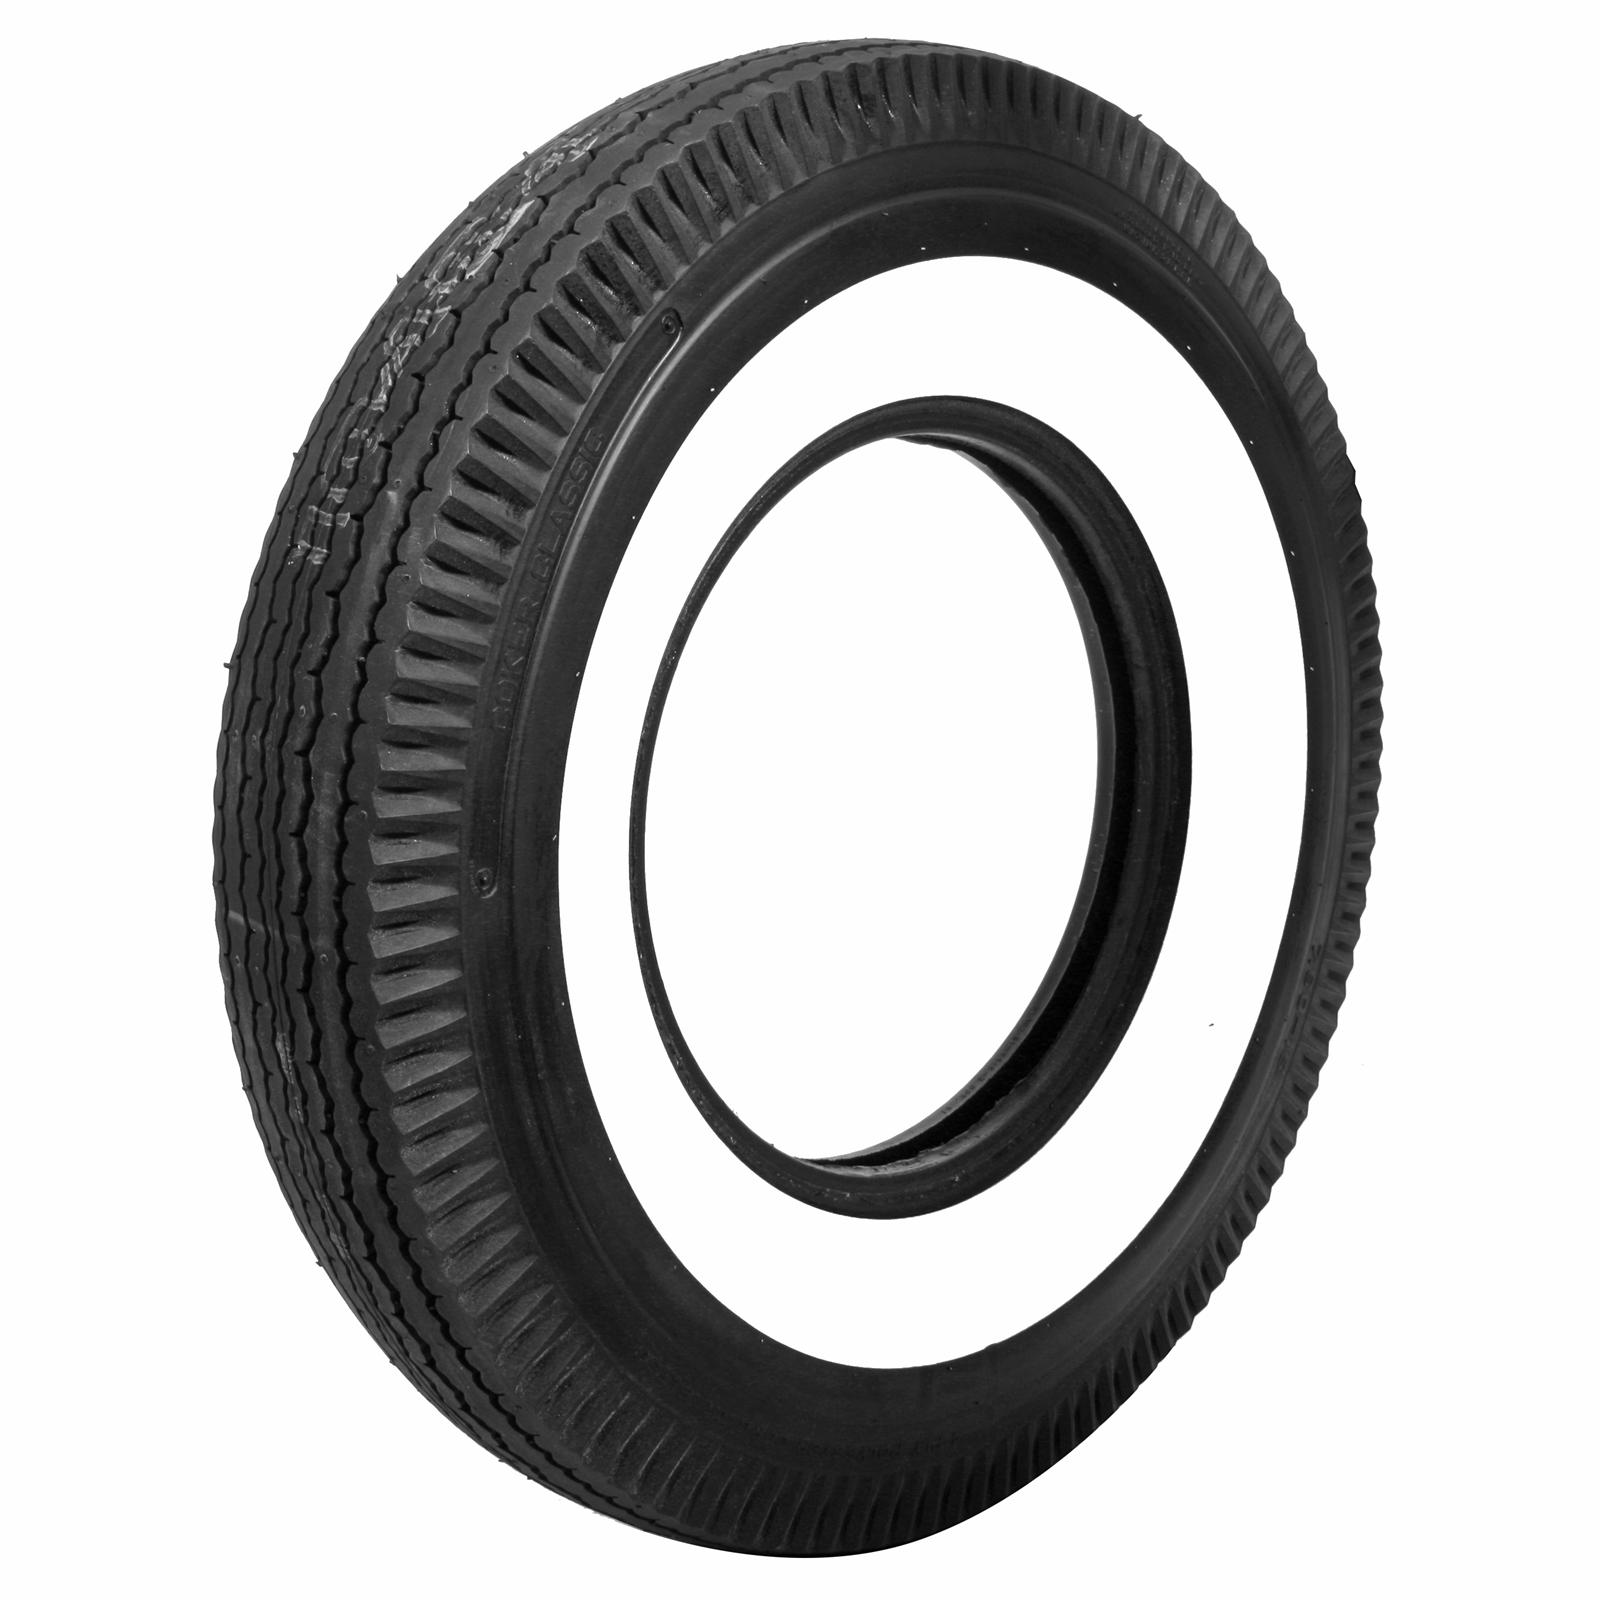 Coker classic bias ply tire bias ply whitewall for 59600